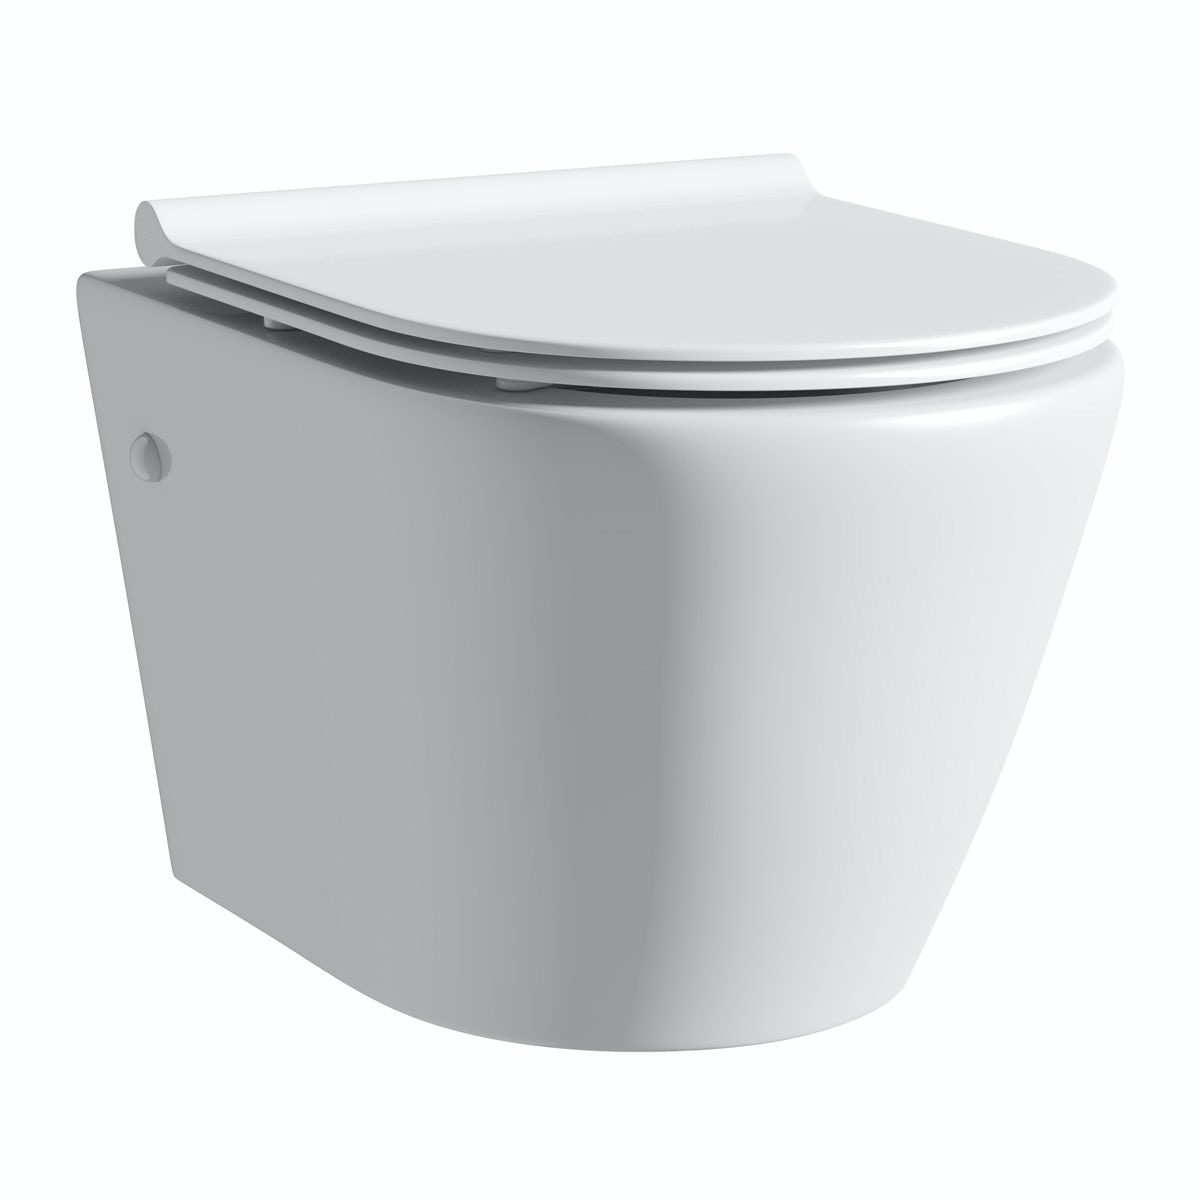 Mode Harrison wall hung toilet inc slimline soft close seat